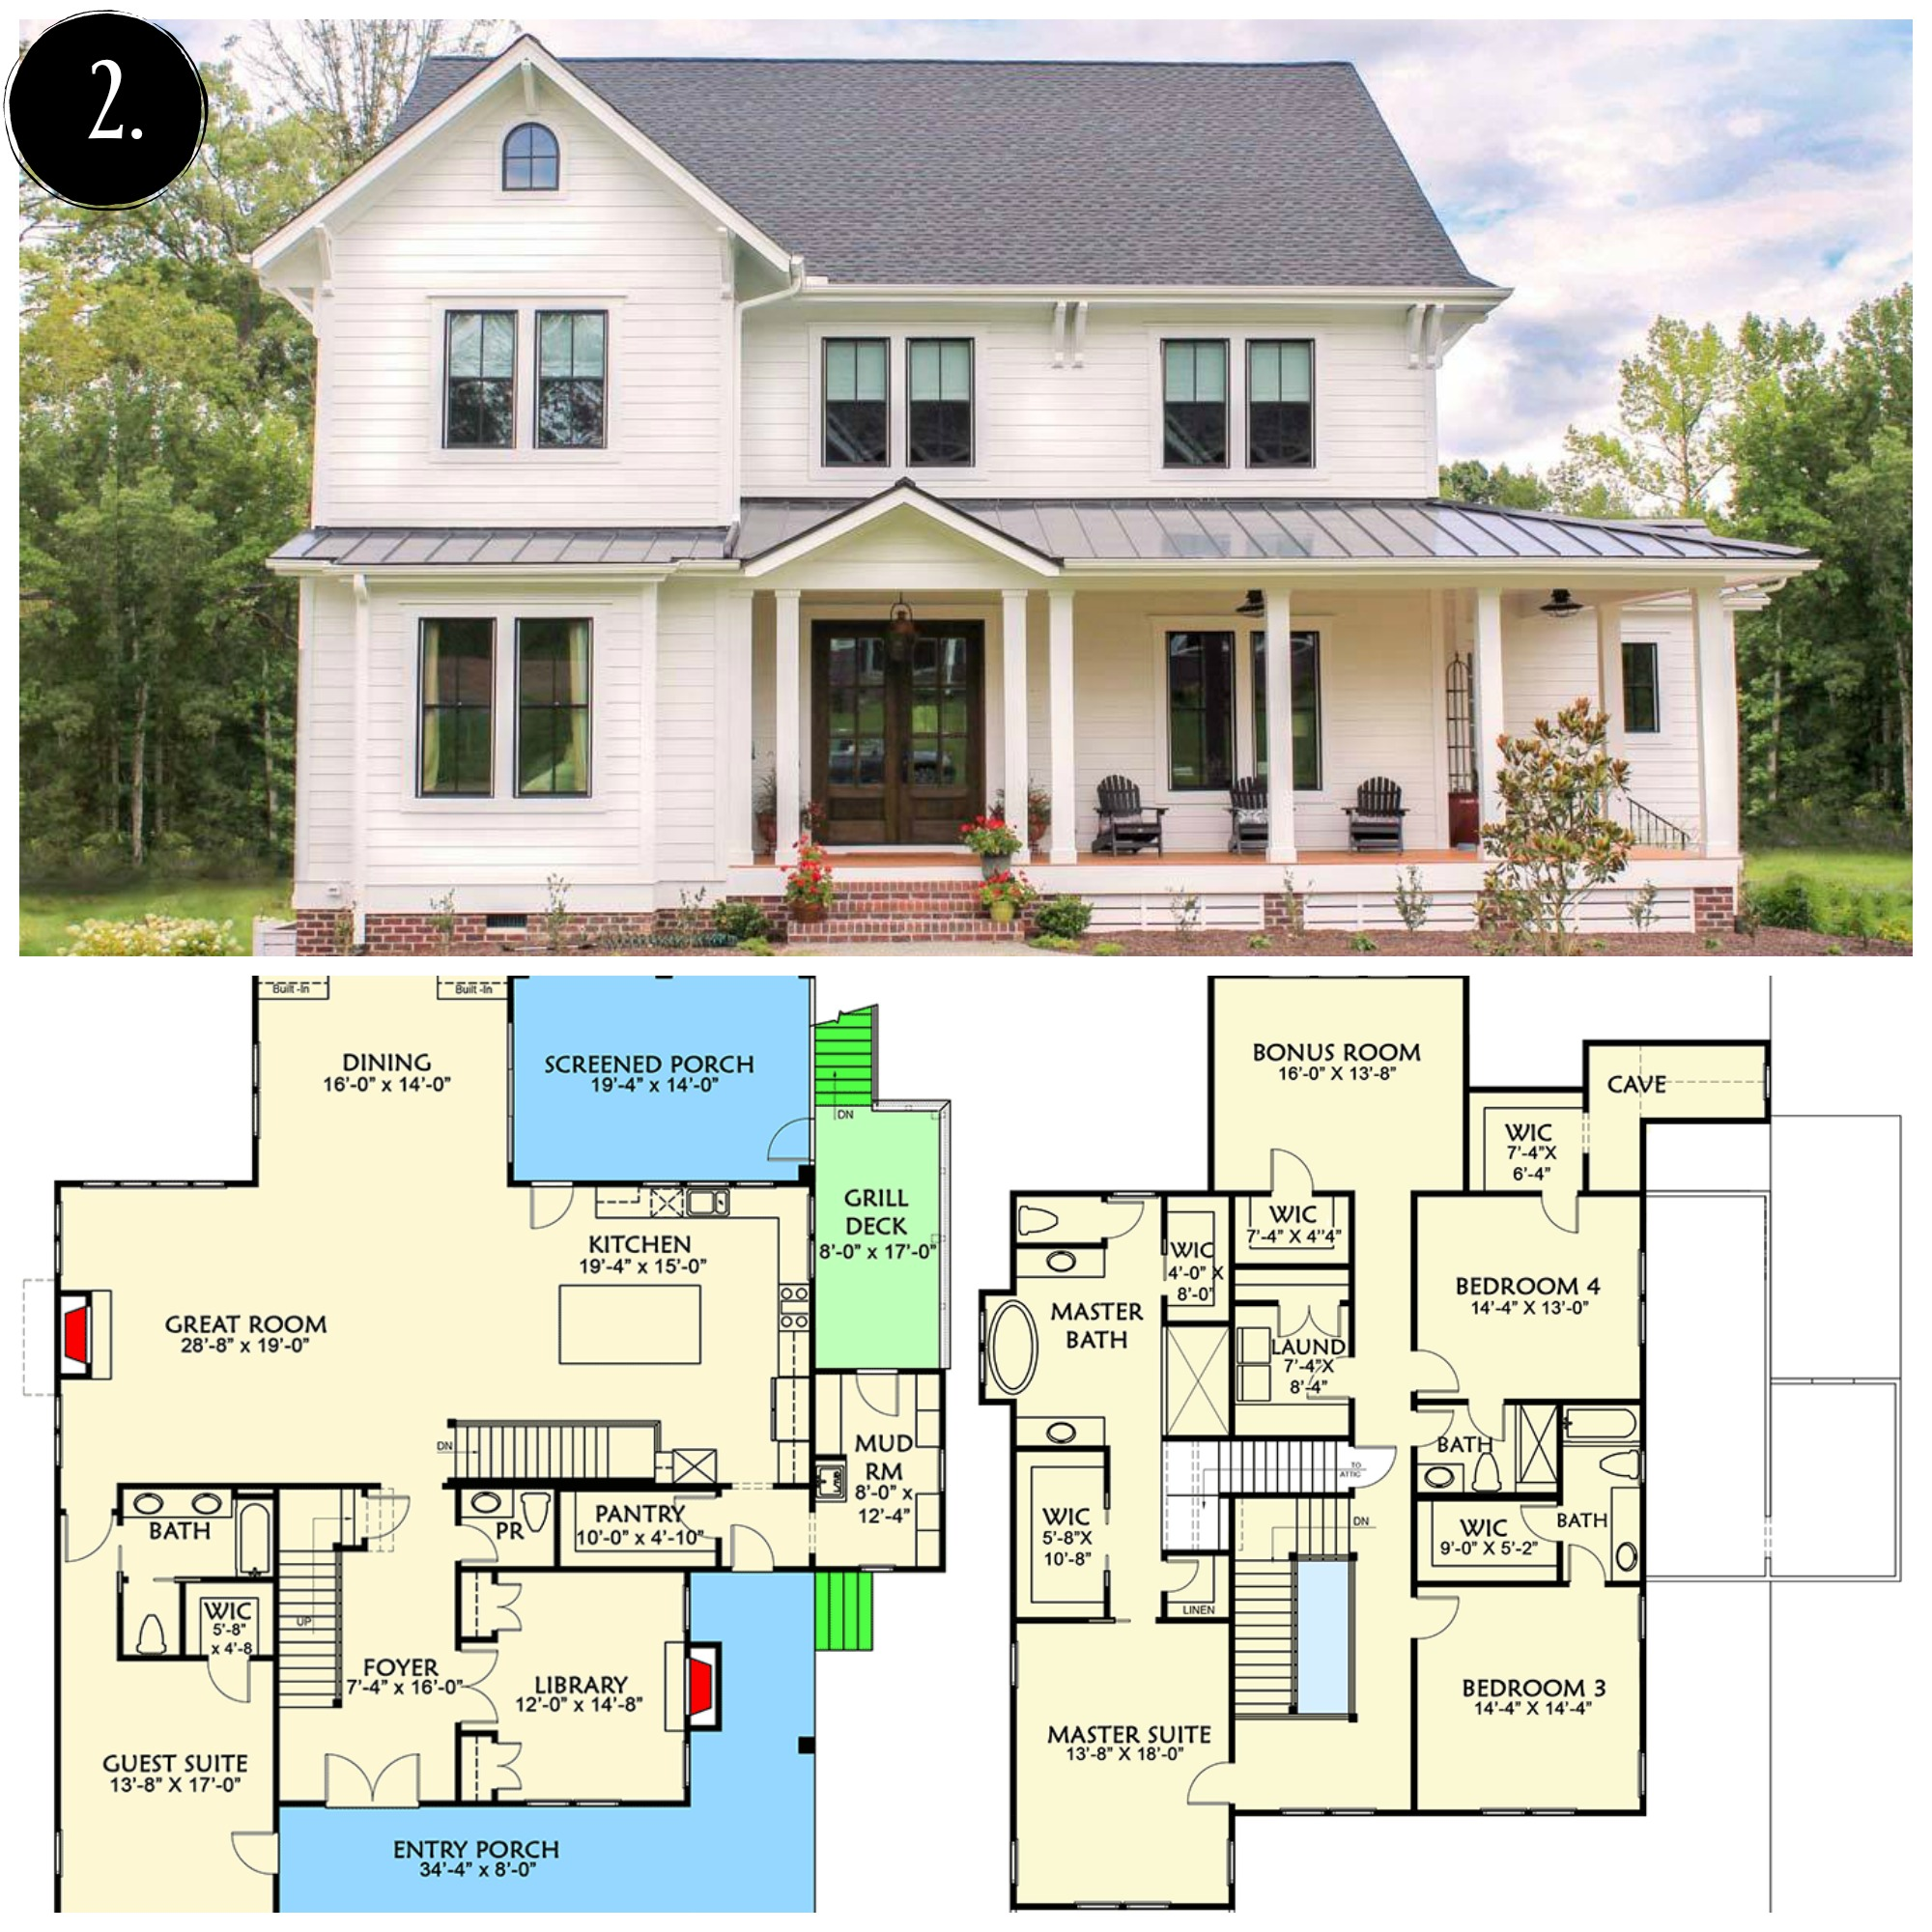 Perfect Modern Farmhouse Floor Plan | Rooms FOR Rent Blog